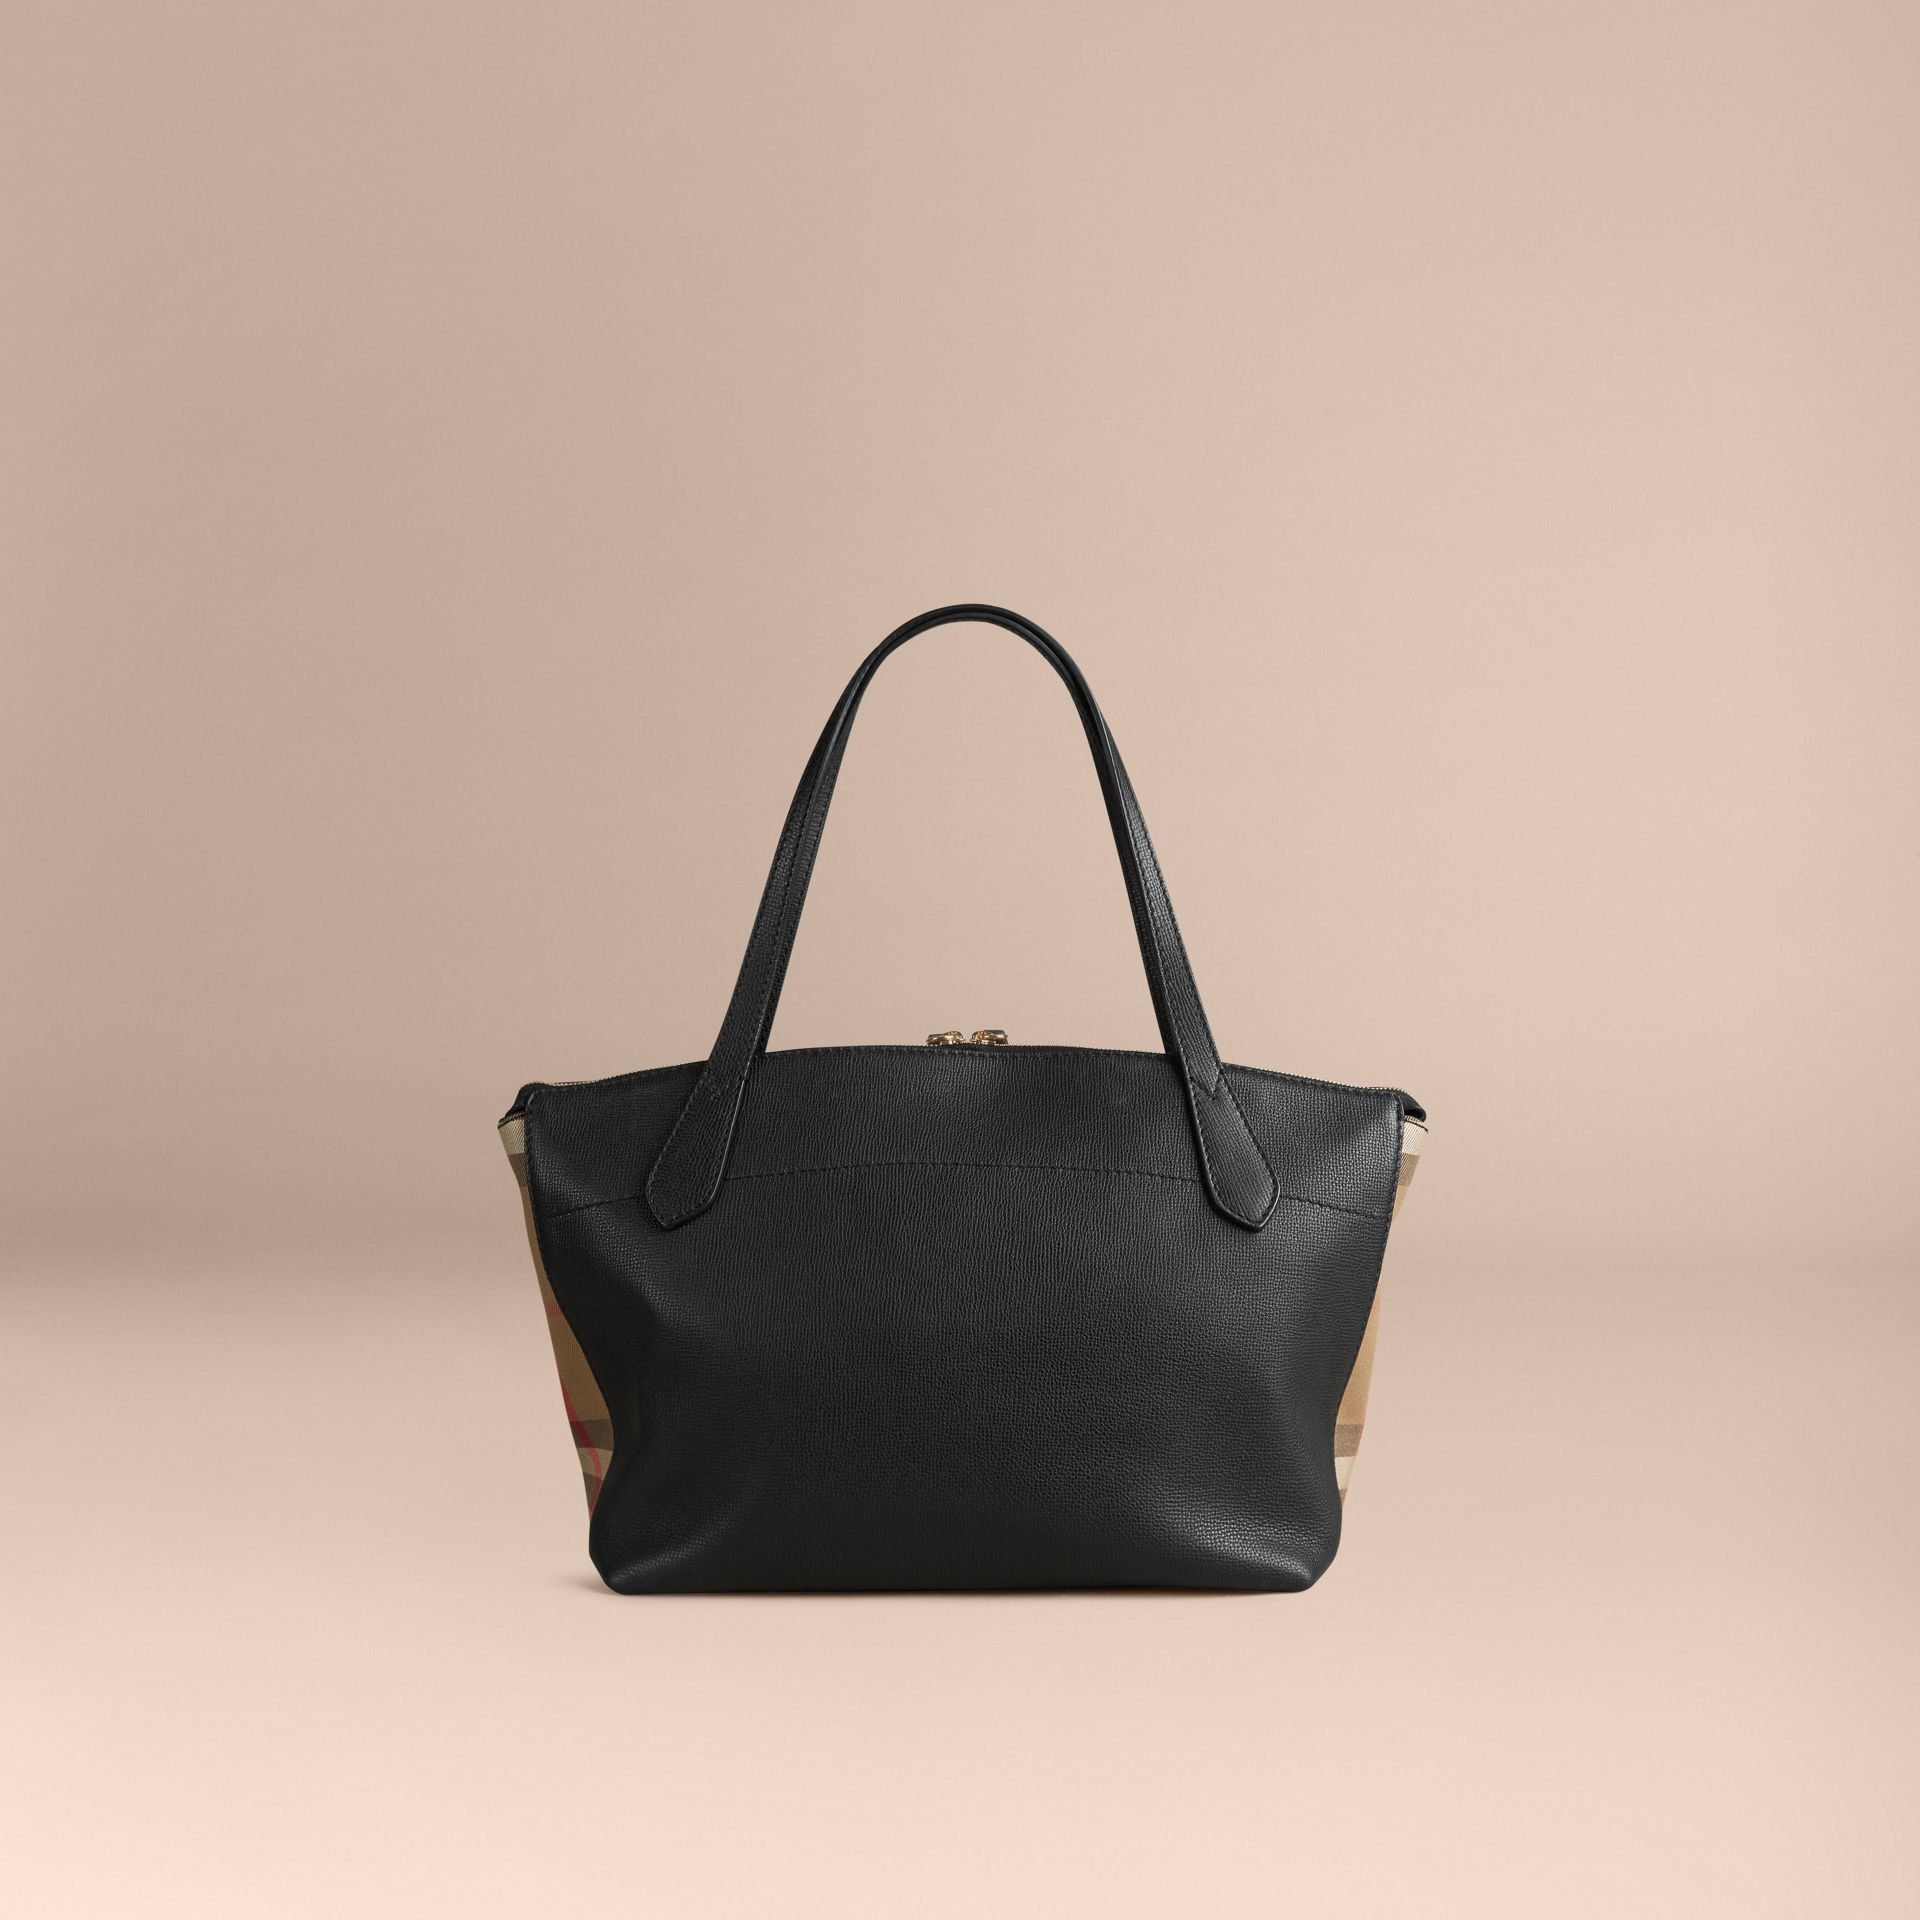 Medium Leather and House Check Tote Bag in Black - Women | Burberry - gallery image 4